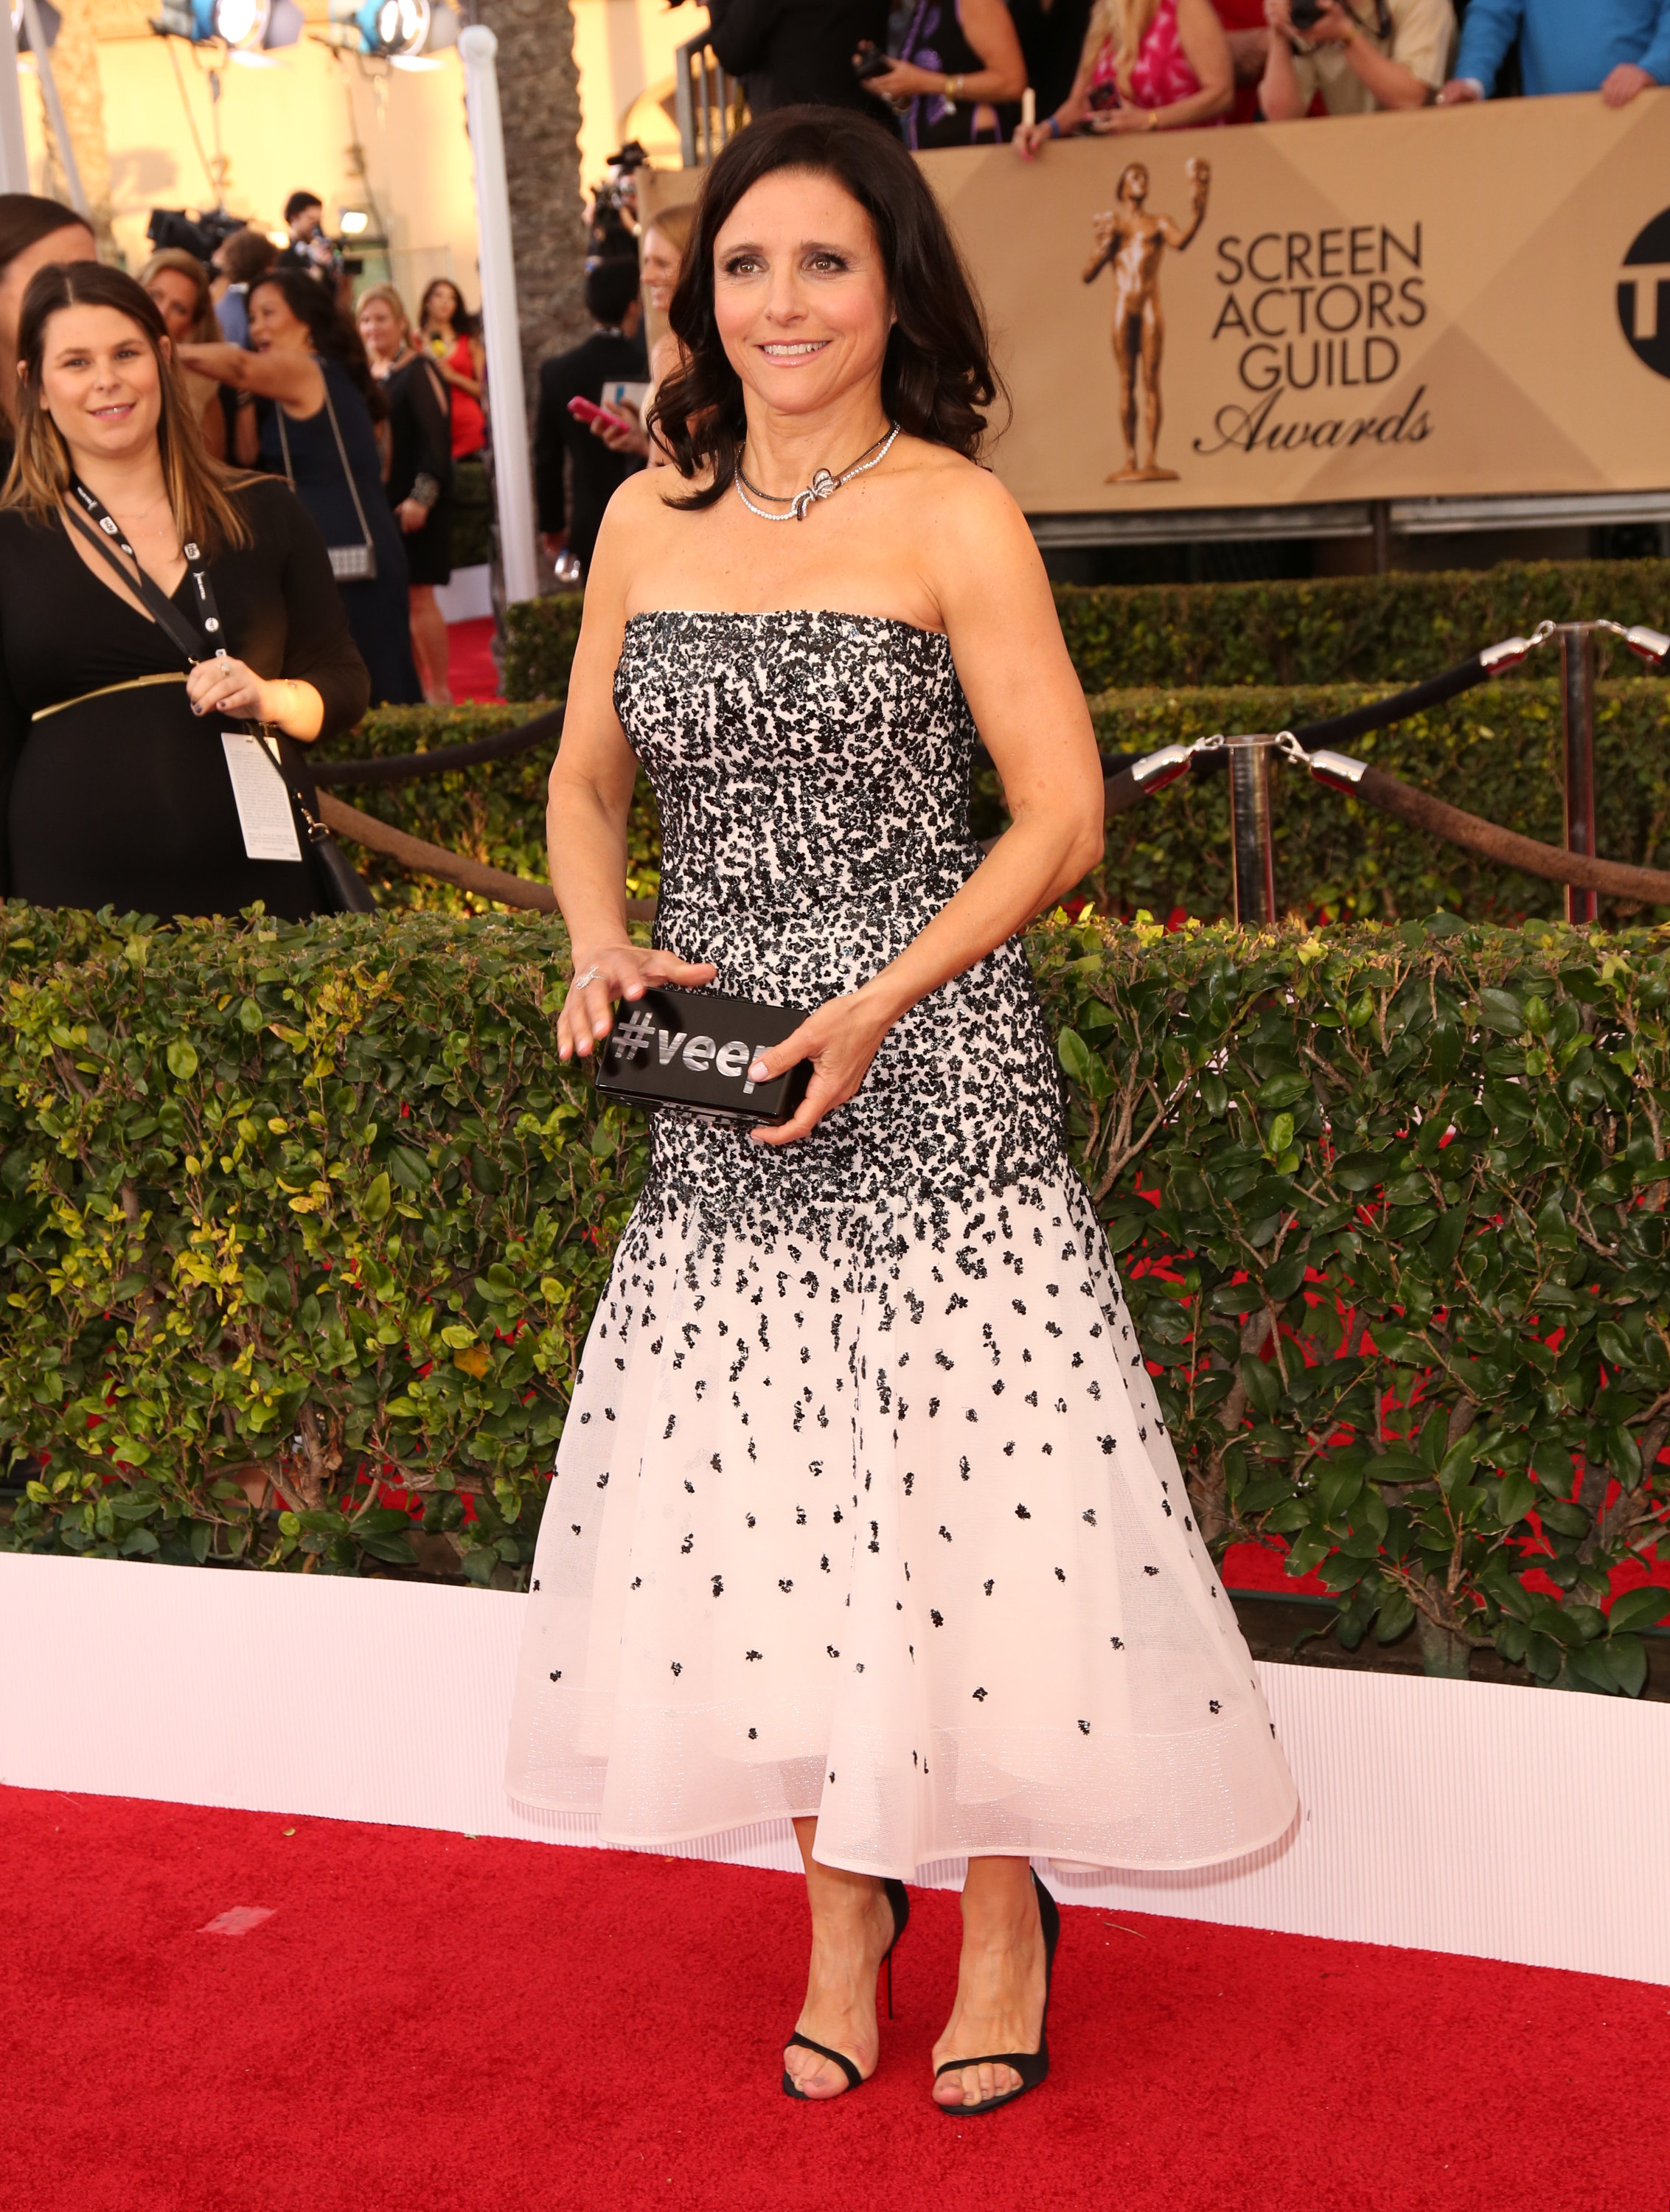 22nd Annual Screen Actors Guild Awards at The Shrine Expo Hall - ArrivalsFeaturing: Julia Louis?DreyfusWhere: Los Angeles, California, United StatesWhen: 30 Jan 2016Credit: Brian To/WENN.com